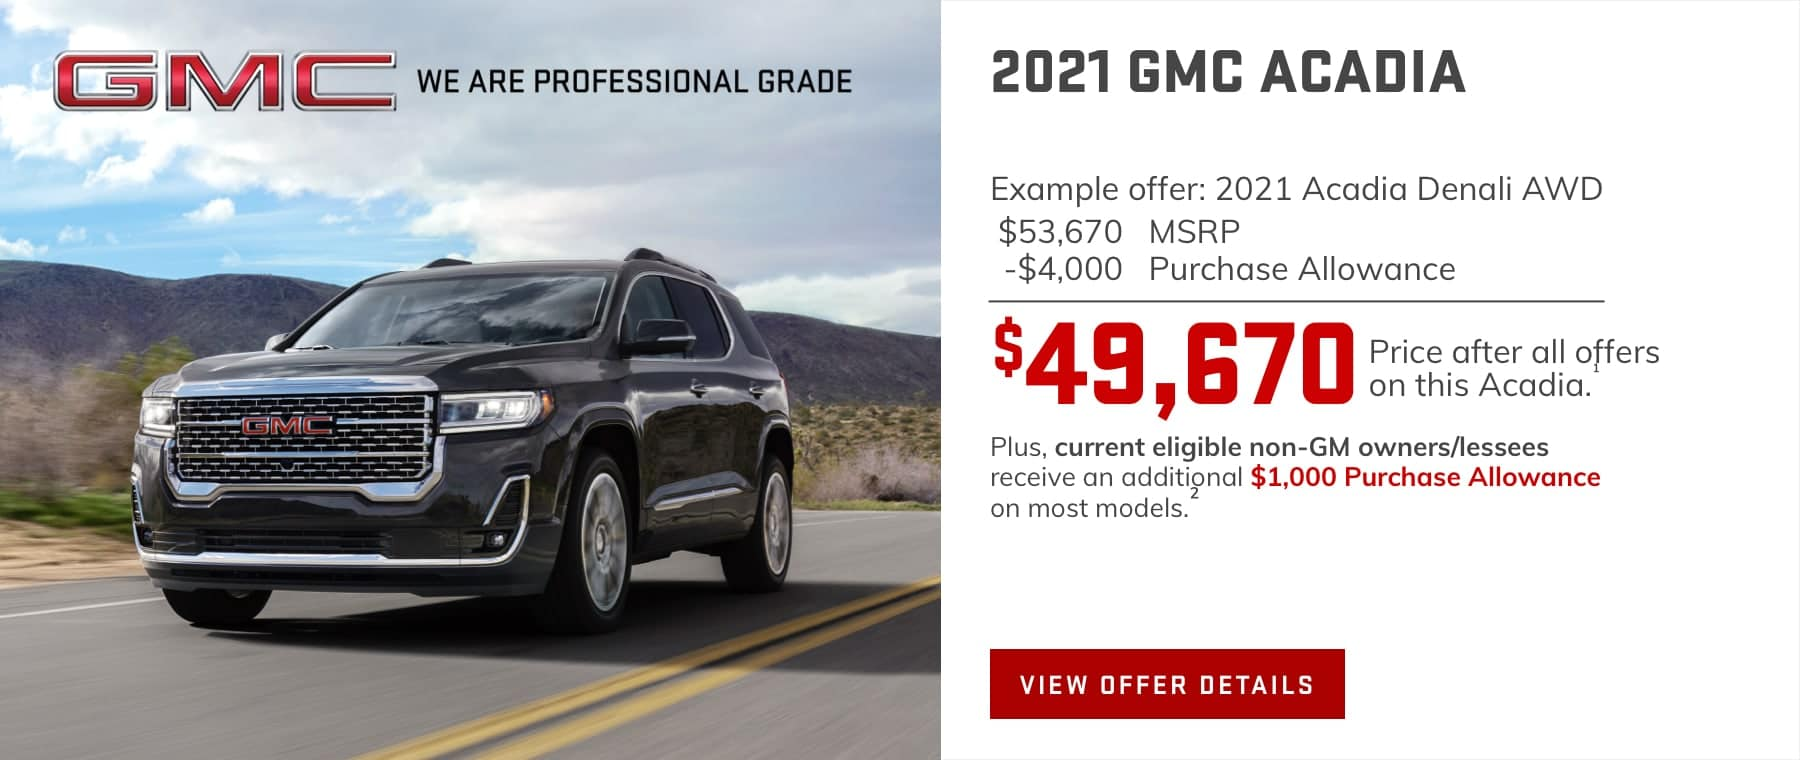 $49,670 Price after all offers on this Acadia.1 Plus, current eligible non-GM owners/lessees receive an additional $1,000 Purchase Allowance on most models.